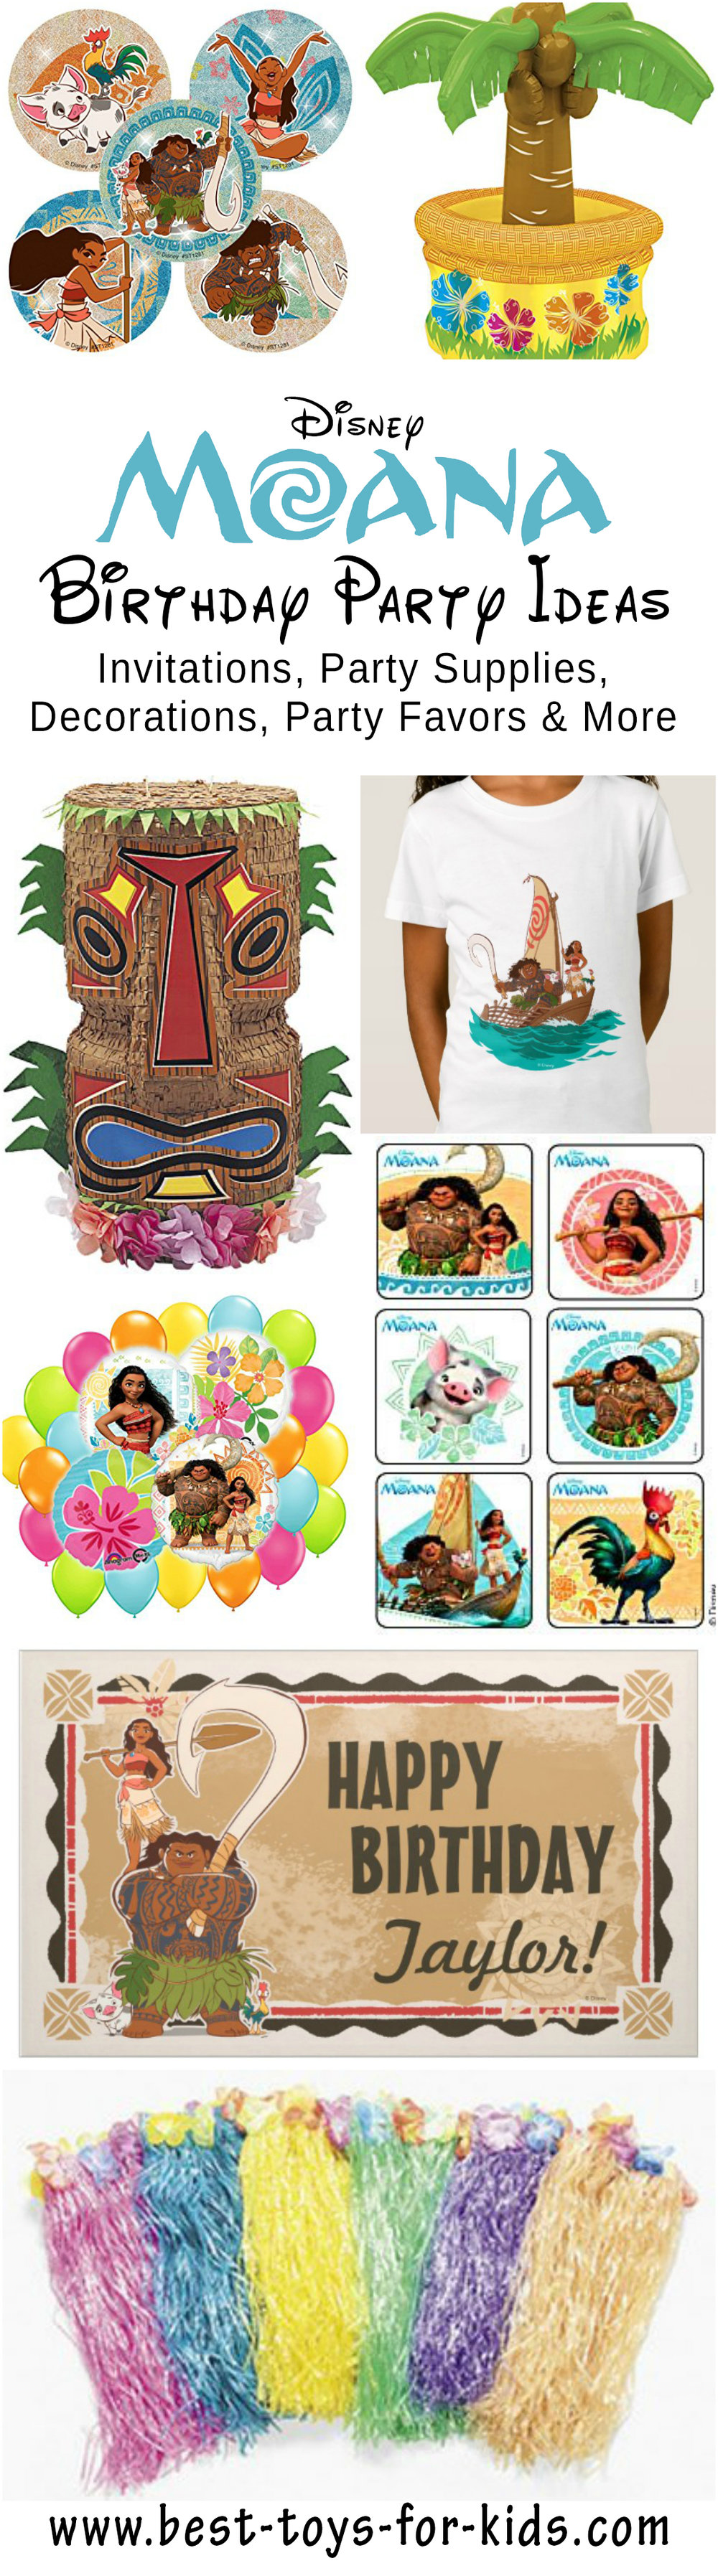 Best Disney Moana Birthday Party Ideas Fit for A Polynesian Princess ...